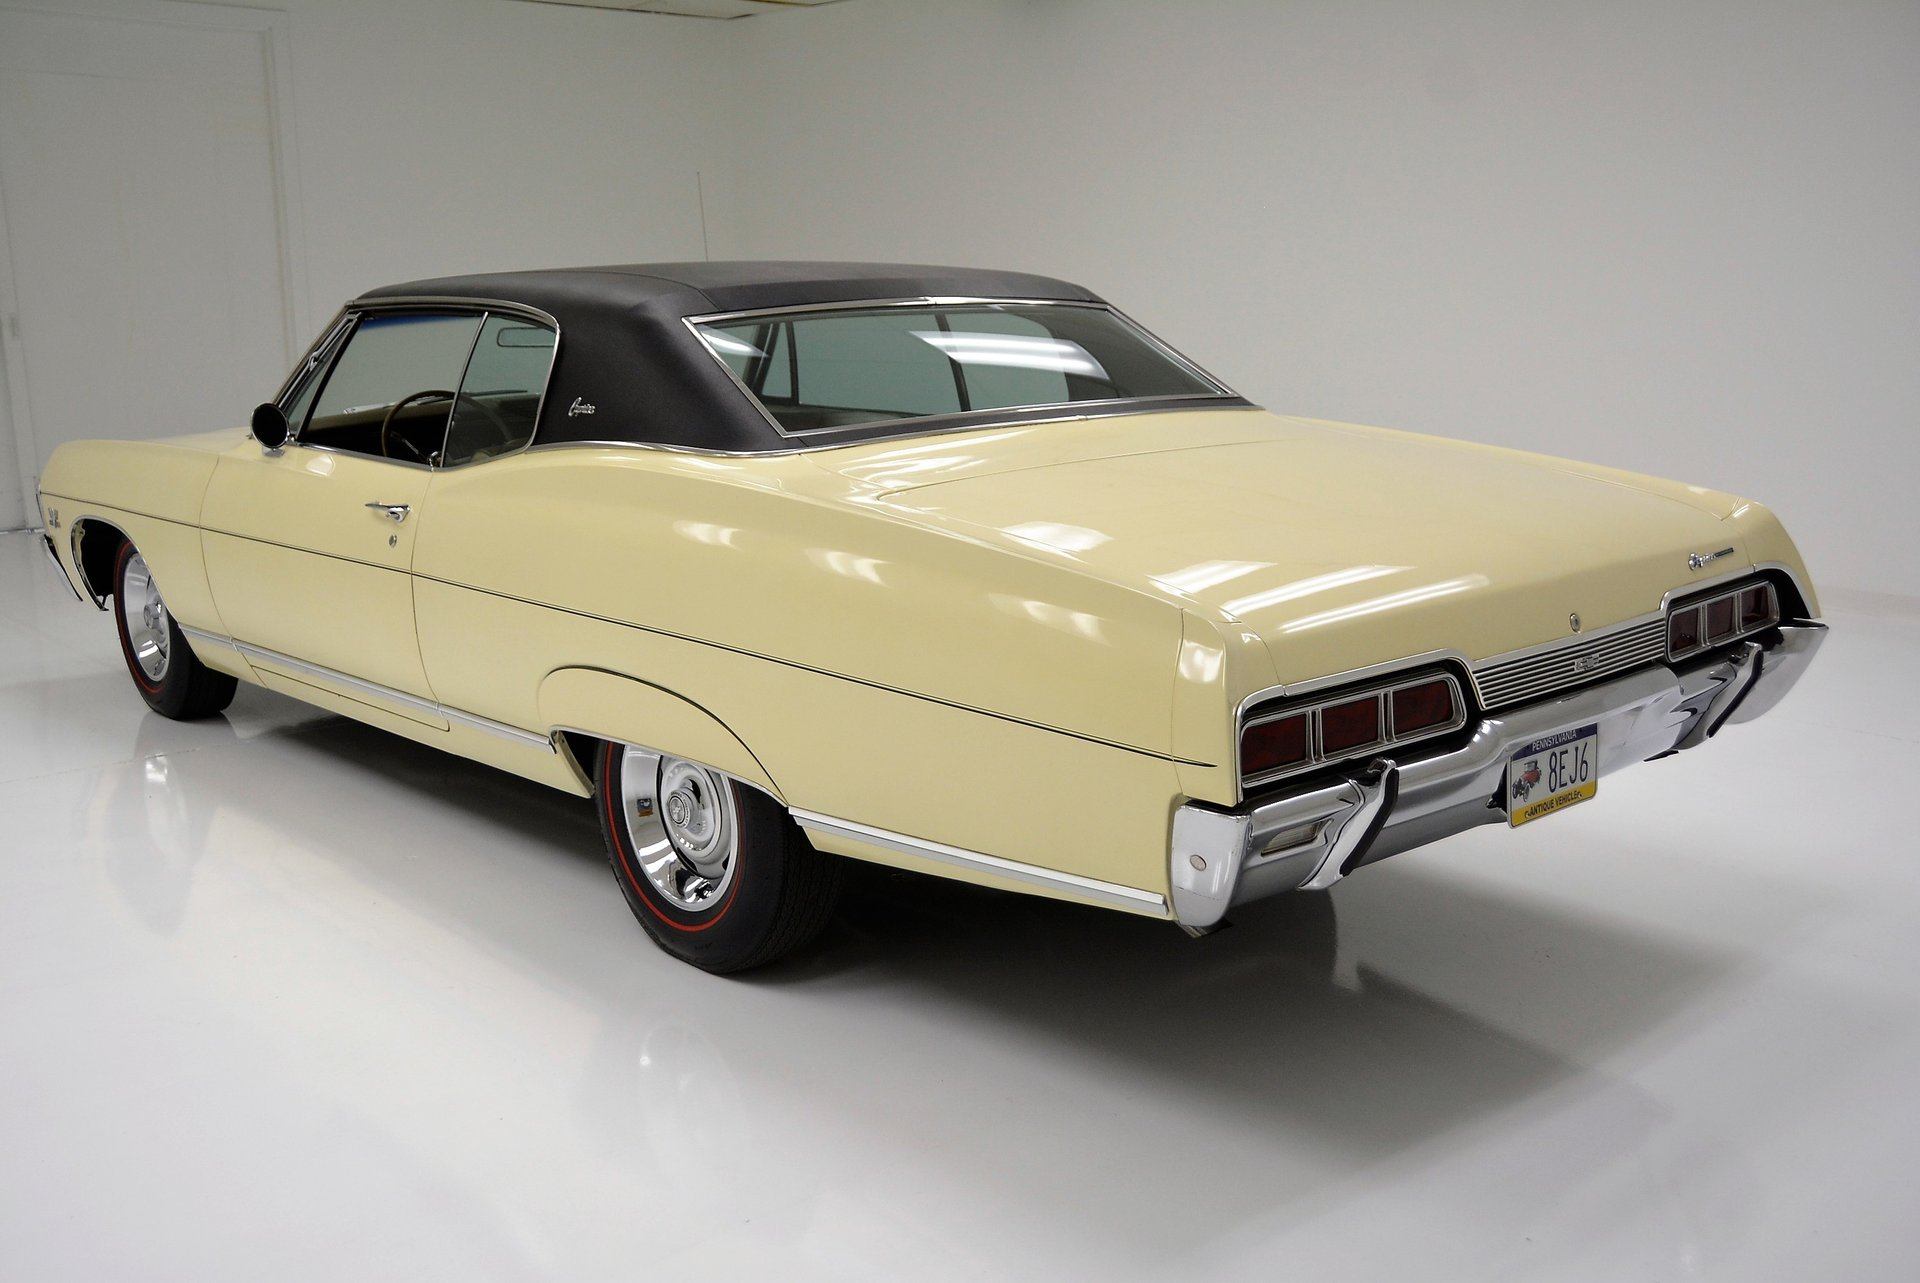 1967 Chevrolet Caprice for sale #87468 | MCG